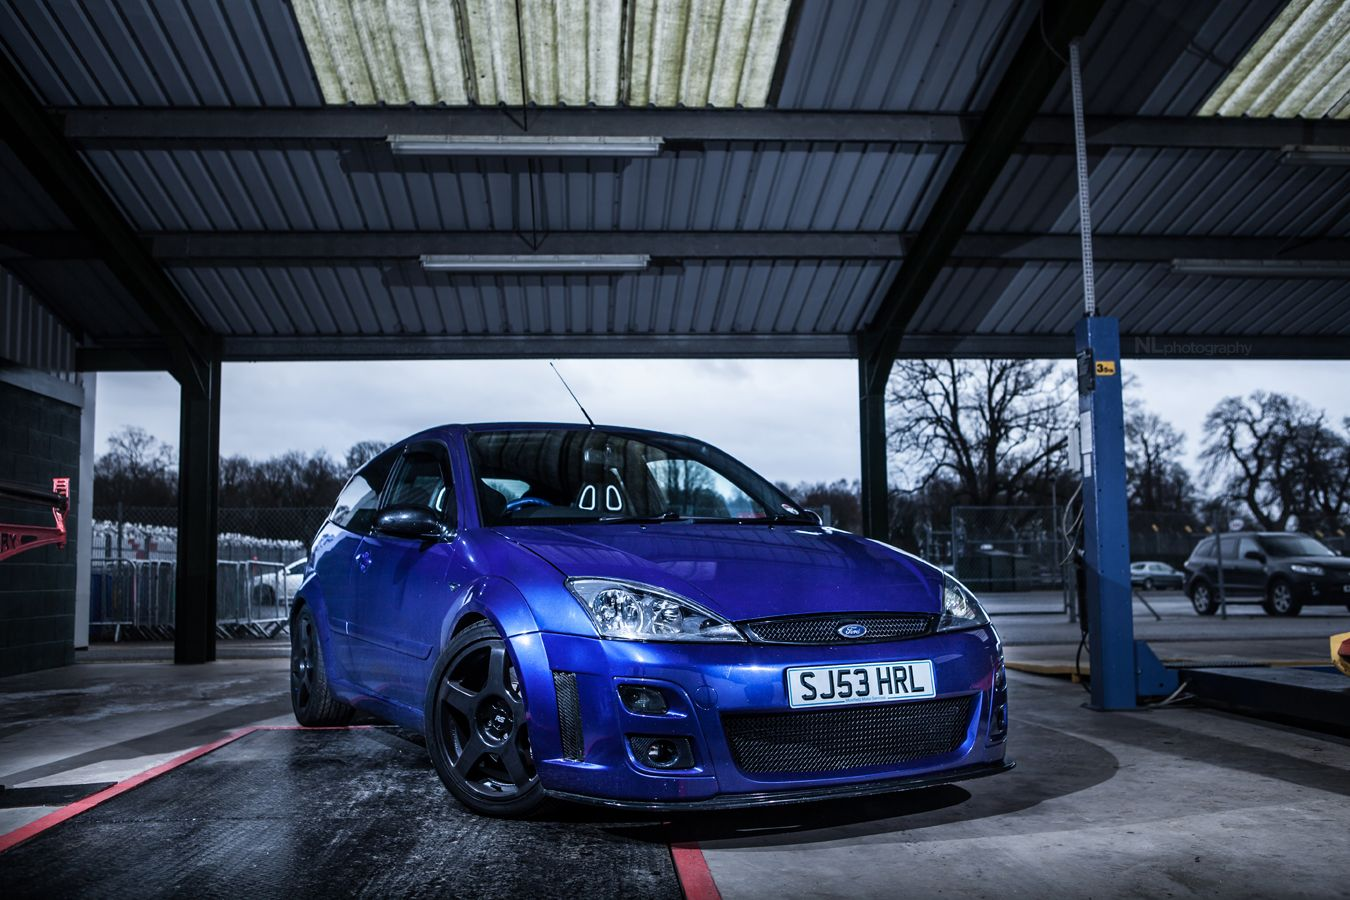 Ford Focus Rs Mk1 With Big Amazing Rims Ford Focus Ford Focus